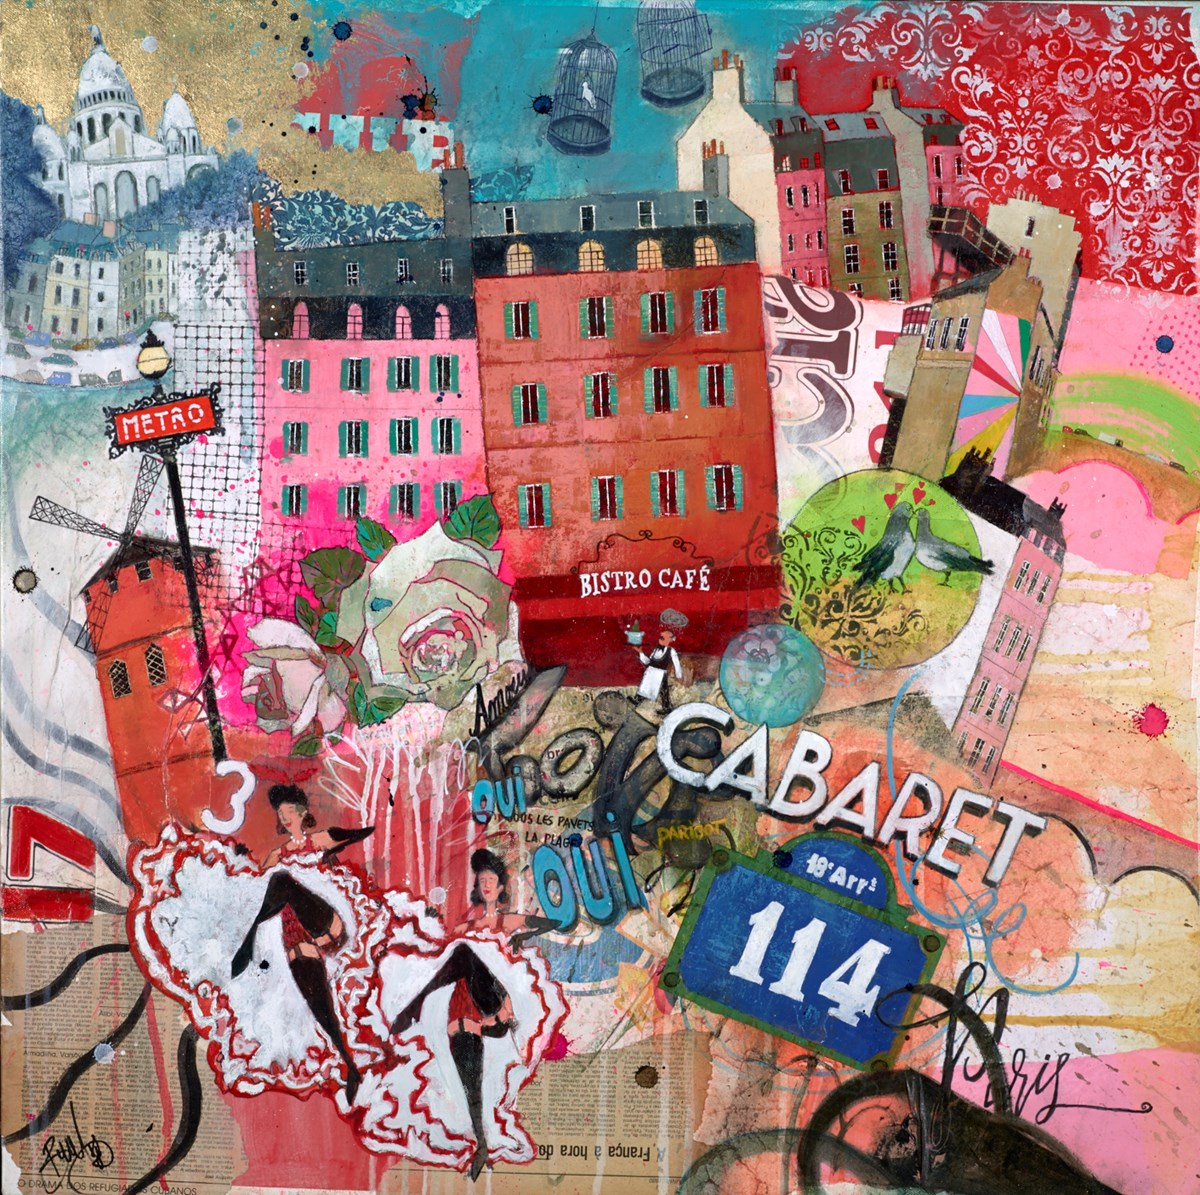 Cabaret by richard burel -  sized 32x32 inches. Available from Whitewall Galleries